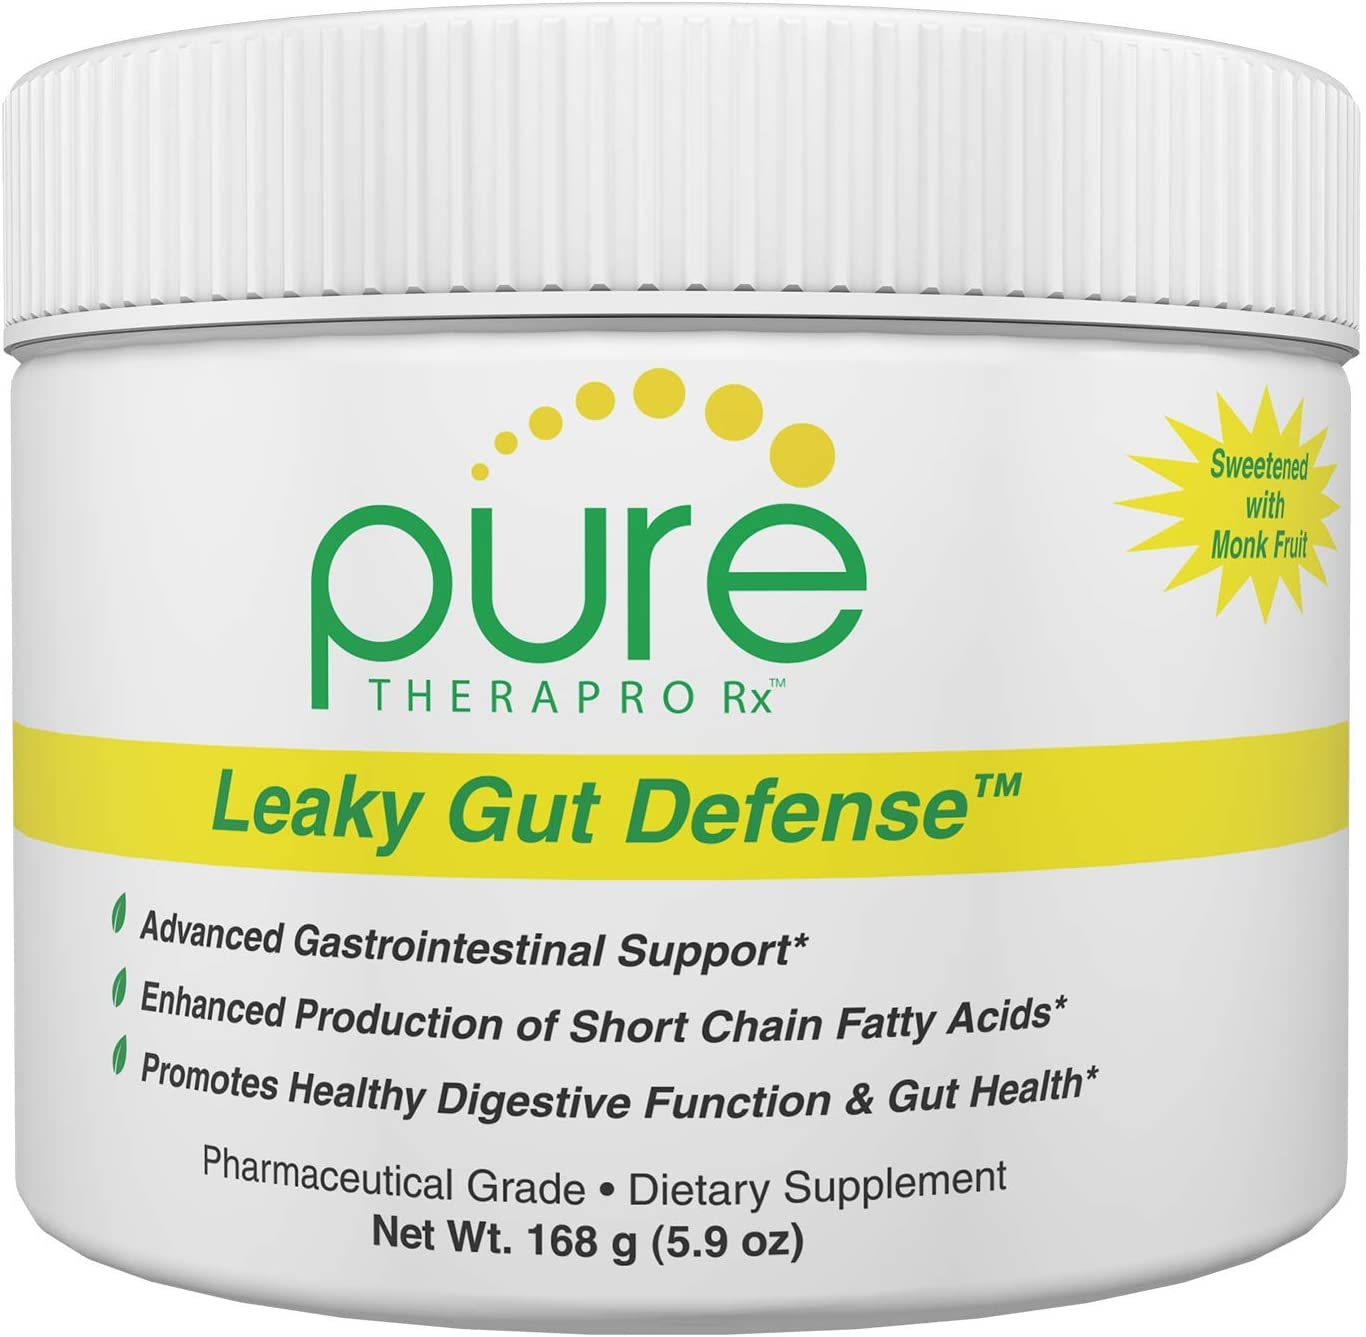 Leaky Gut Defense – 30 Servings GI Repair Contains 3g L-Glutamine, Licorice Root deglycyrrhized , Aloe Leaf Arabinogalactan Stevia-Free – Sweetened with Monk Fruit Pharmaceutical Grade